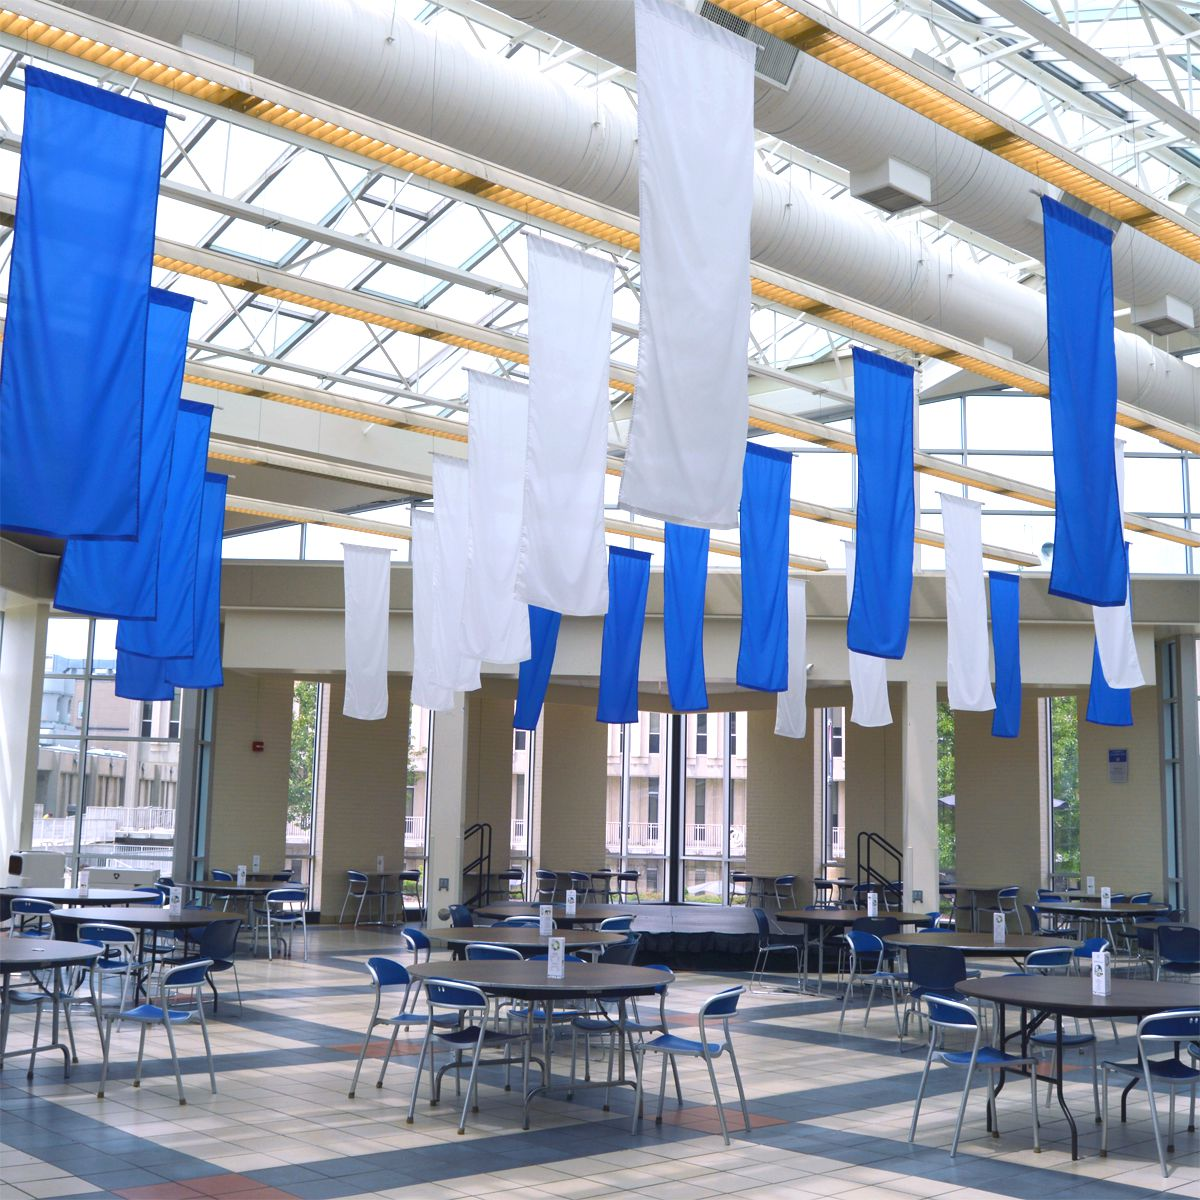 Student Center with empty tables and blue and white flags